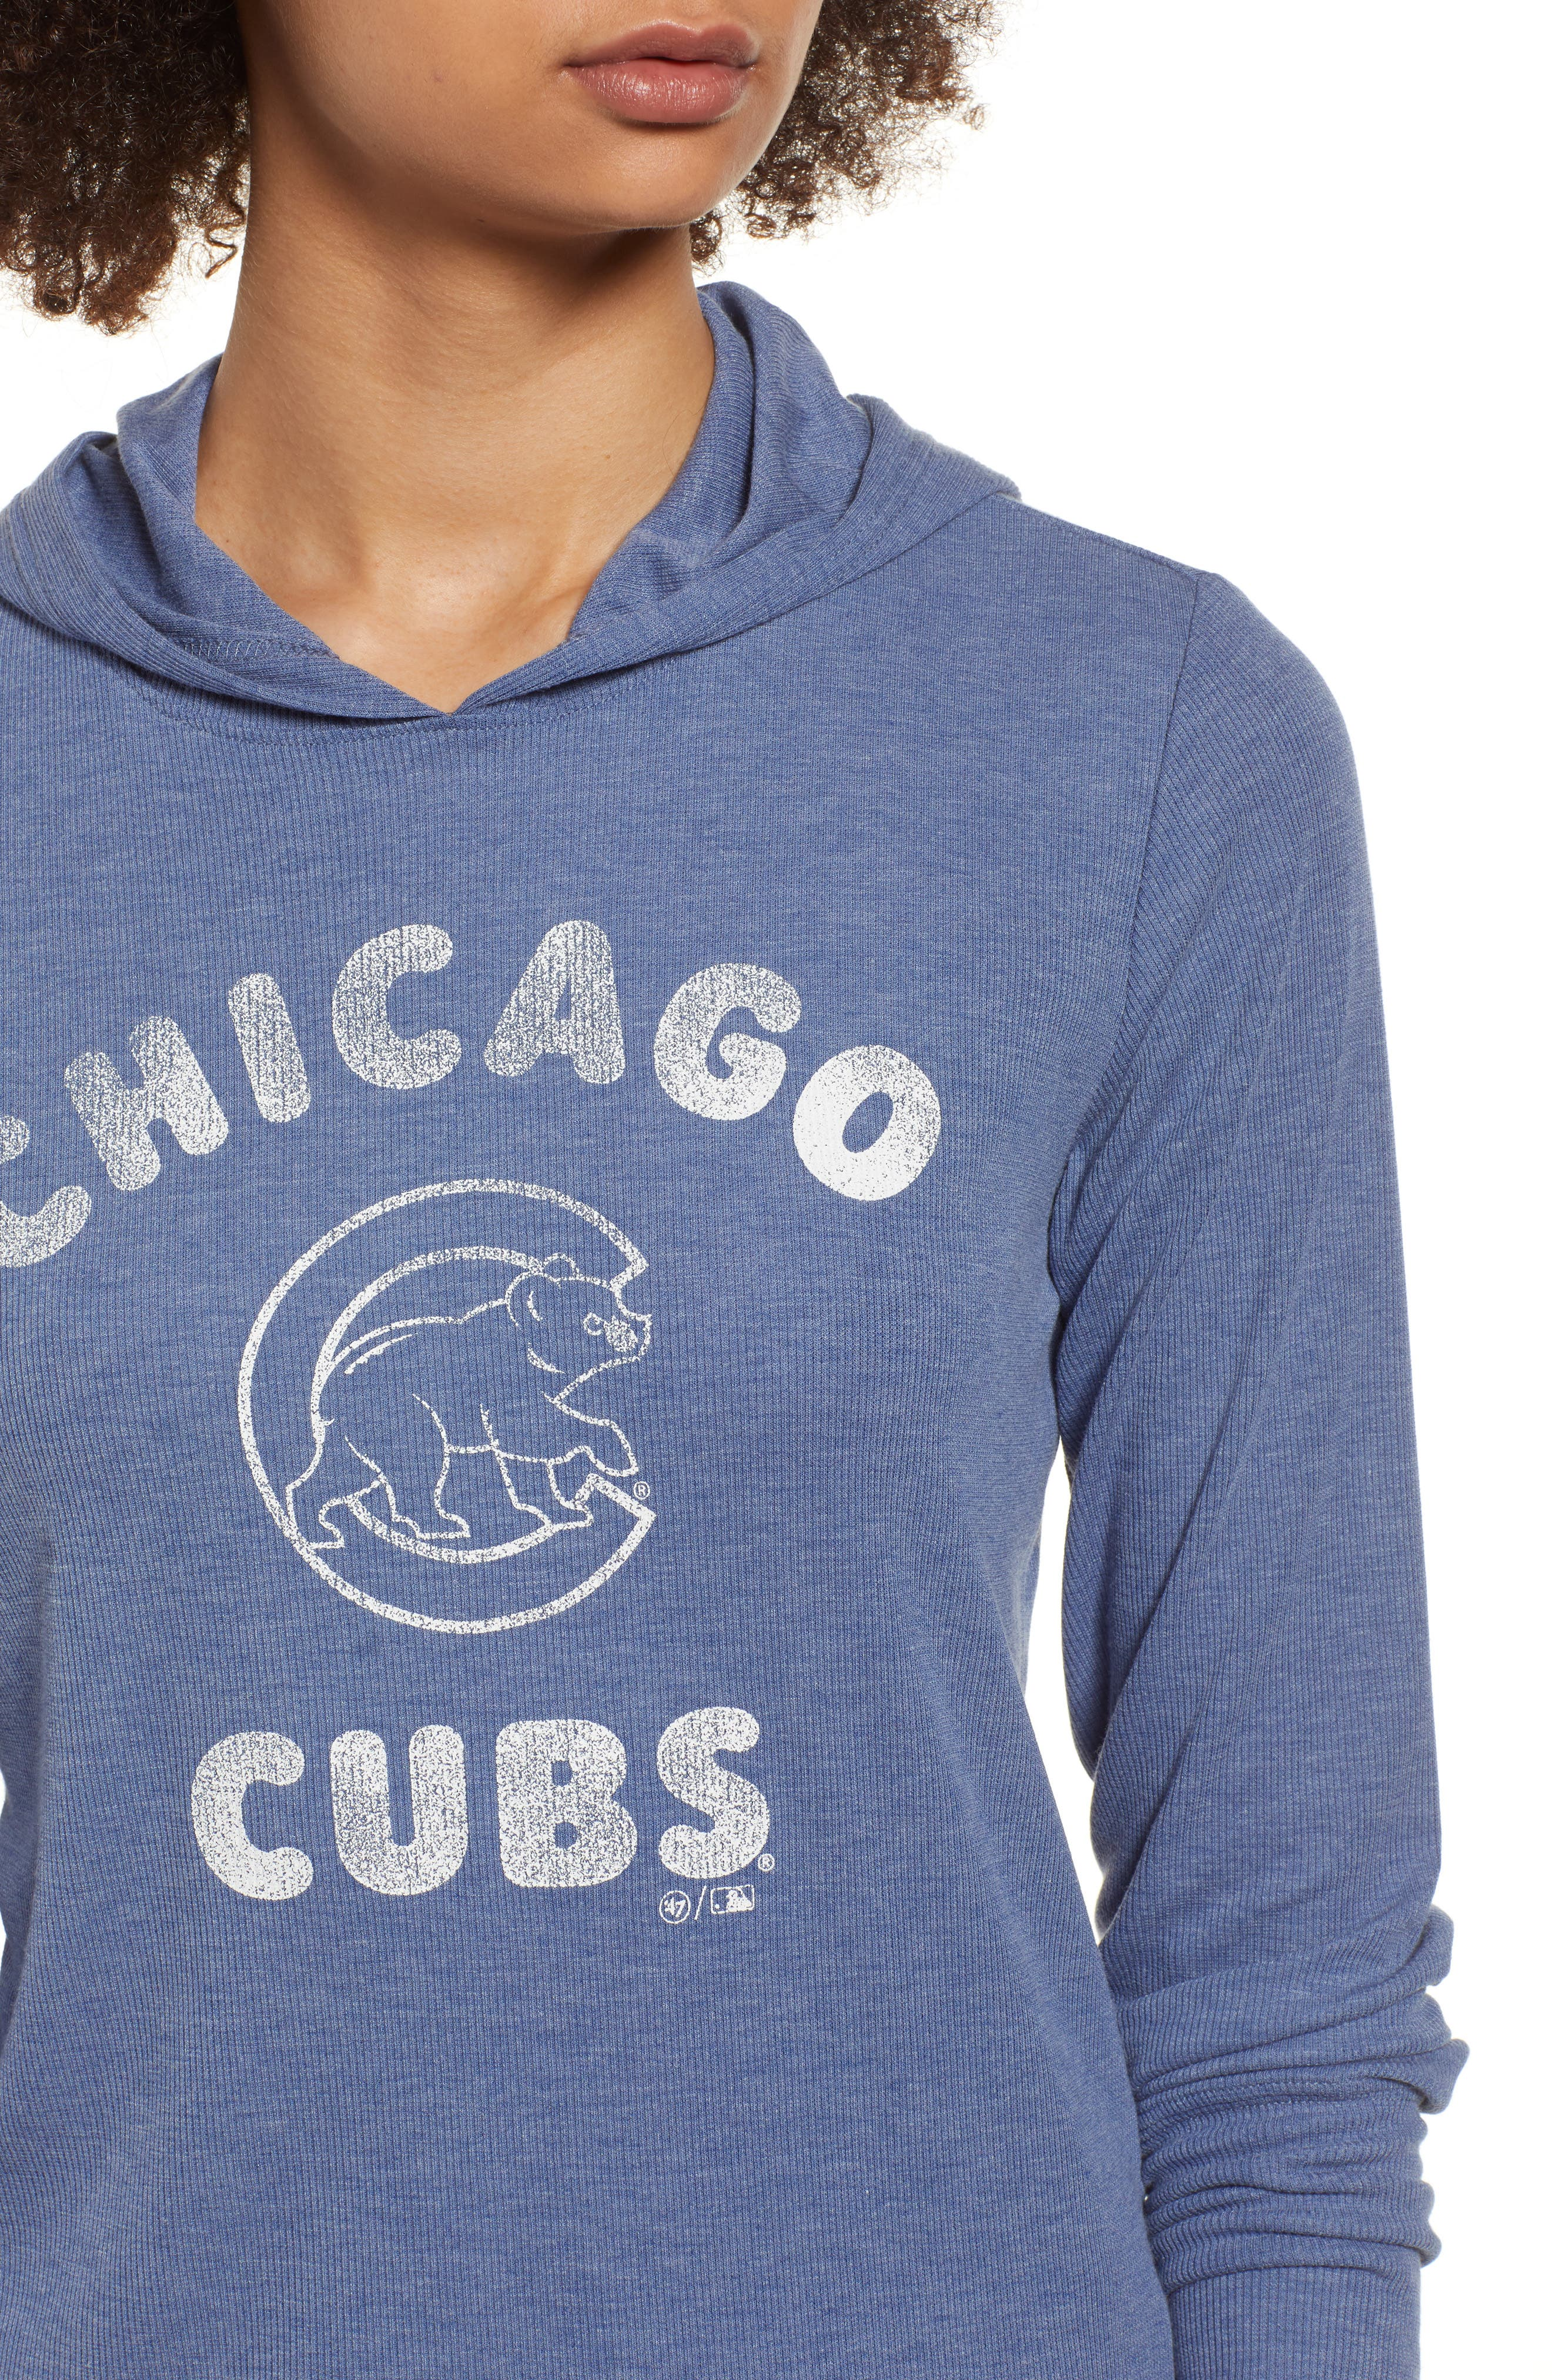 Campbell Chicago Cubs Rib Knit Hoodie,                             Alternate thumbnail 4, color,                             400